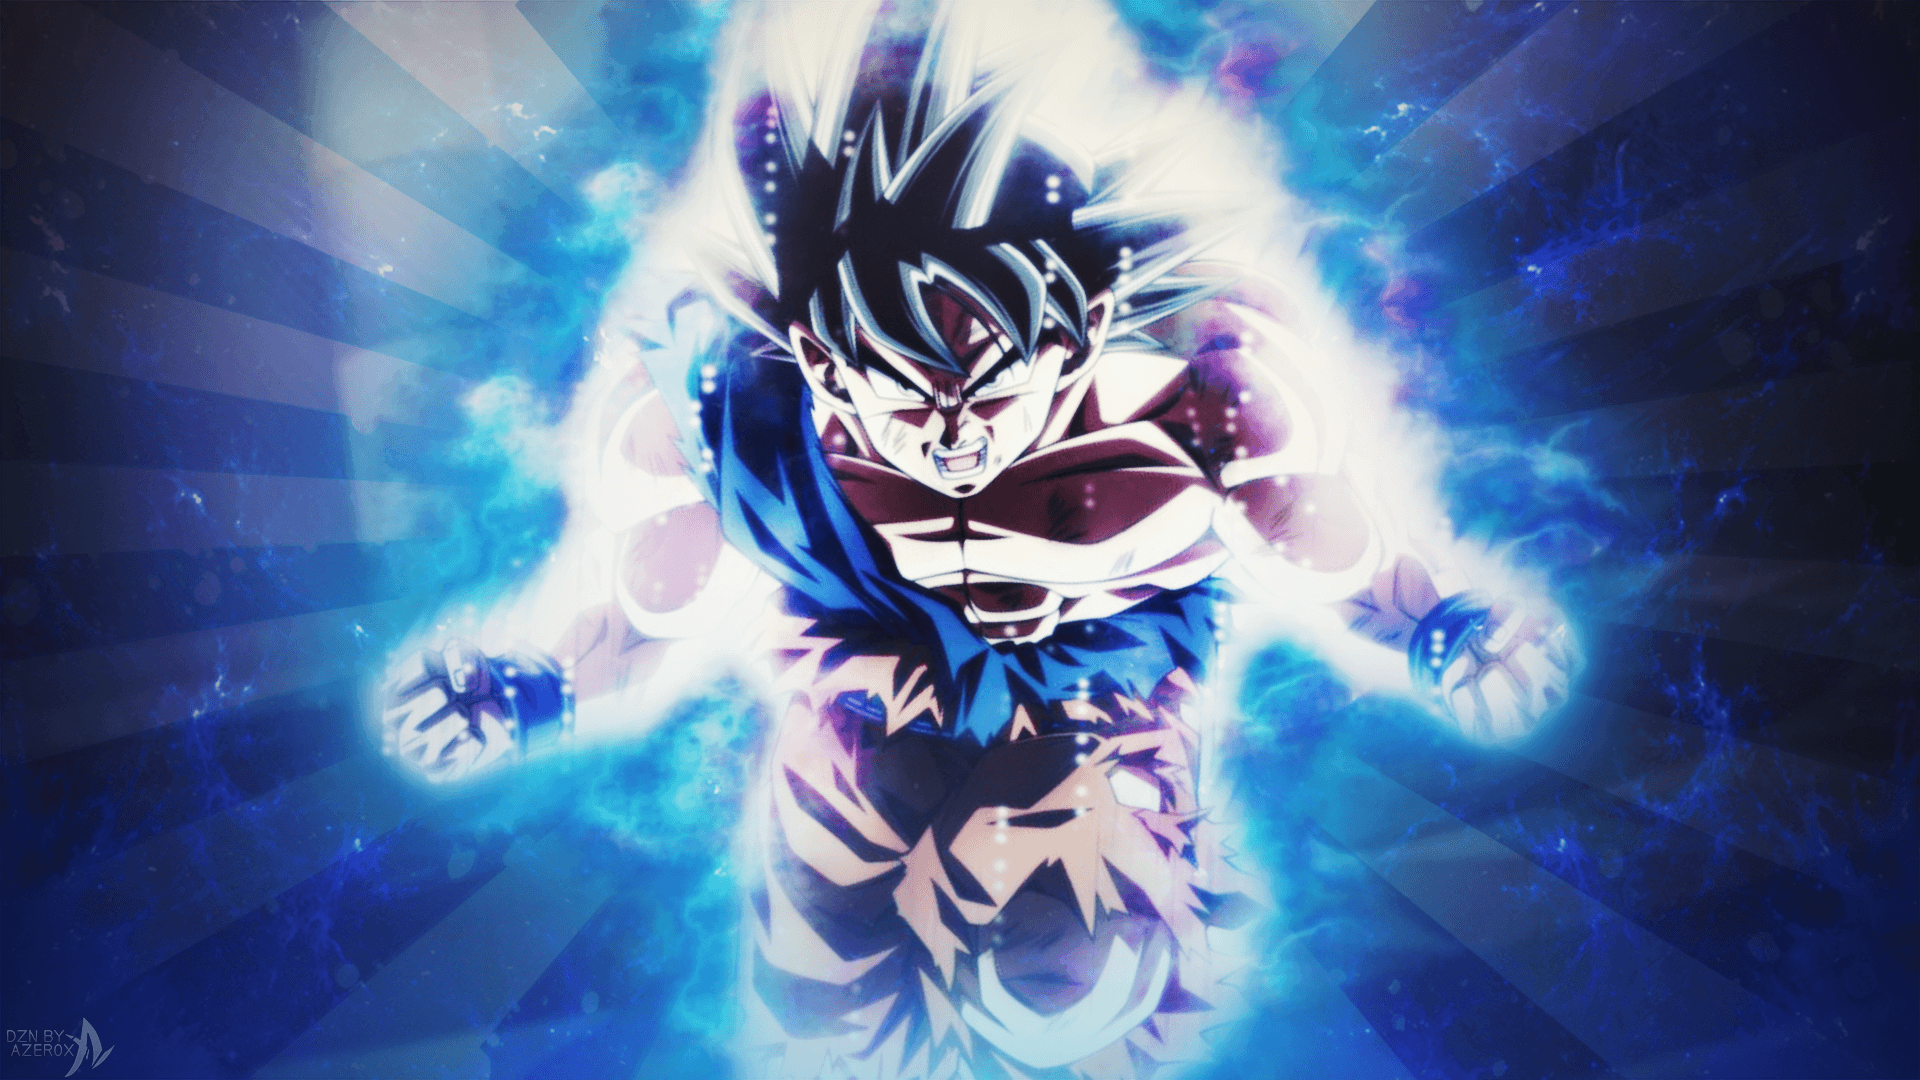 Goku Ultra Instinto Wallpapers Top Free Goku Ultra Instinto Backgrounds Wallpaperaccess